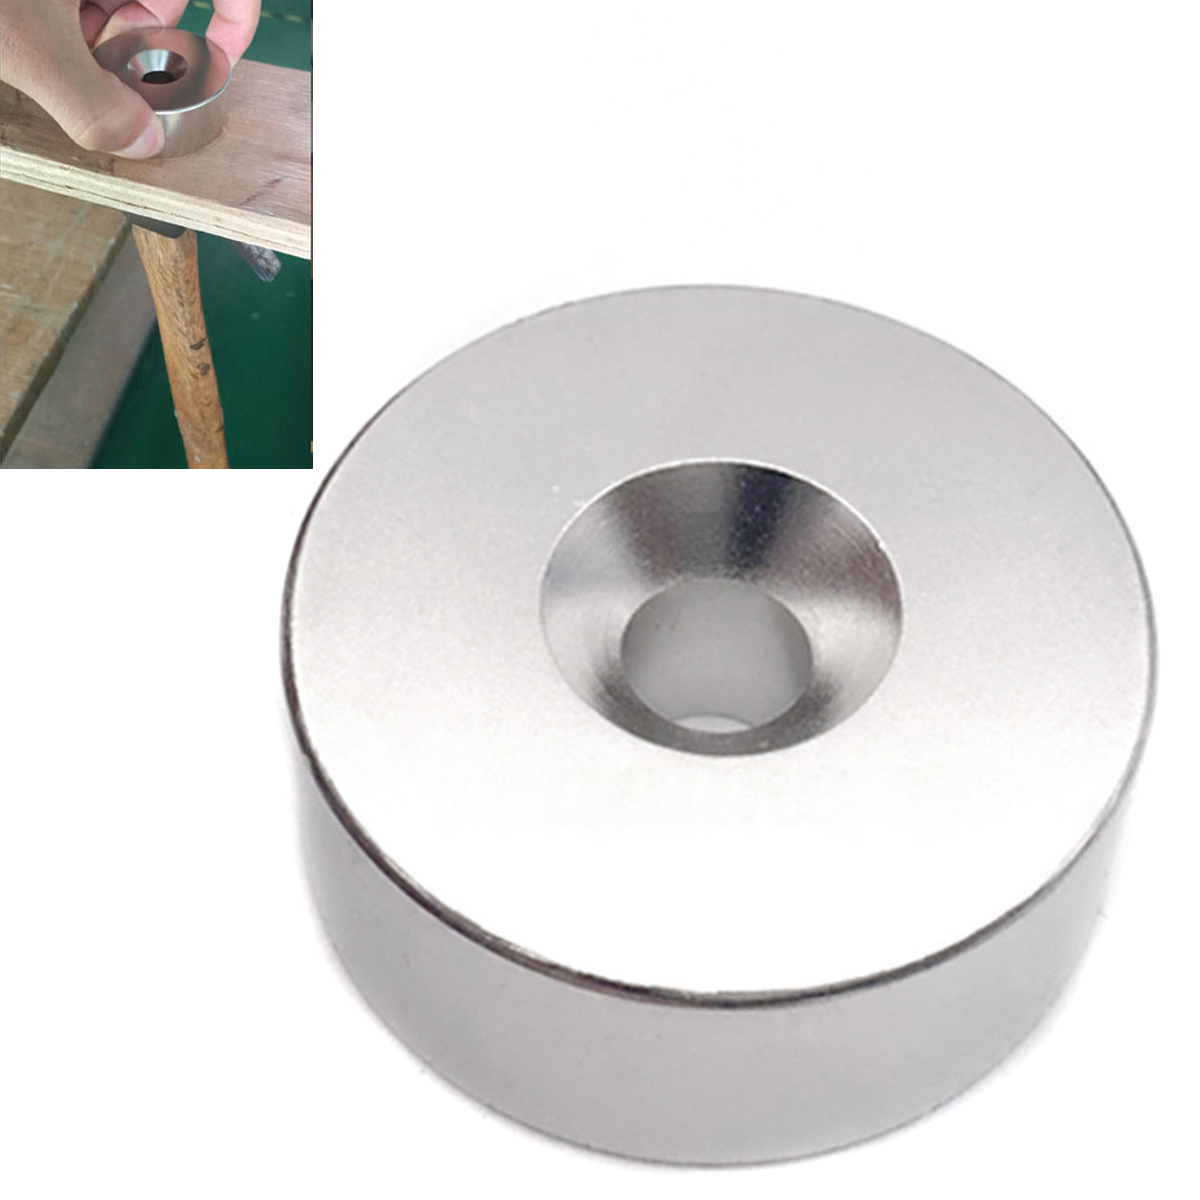 1pc N52 Super Strong Round Disc Magnets Hole Rare Earth Neodymium Salvage Magnet For Hunting Recovering Keys 60*20mm Mayitr 50pcs round n52 neodymium magnets strong rare earth magnet disc 20mm x 3mm for industry tools